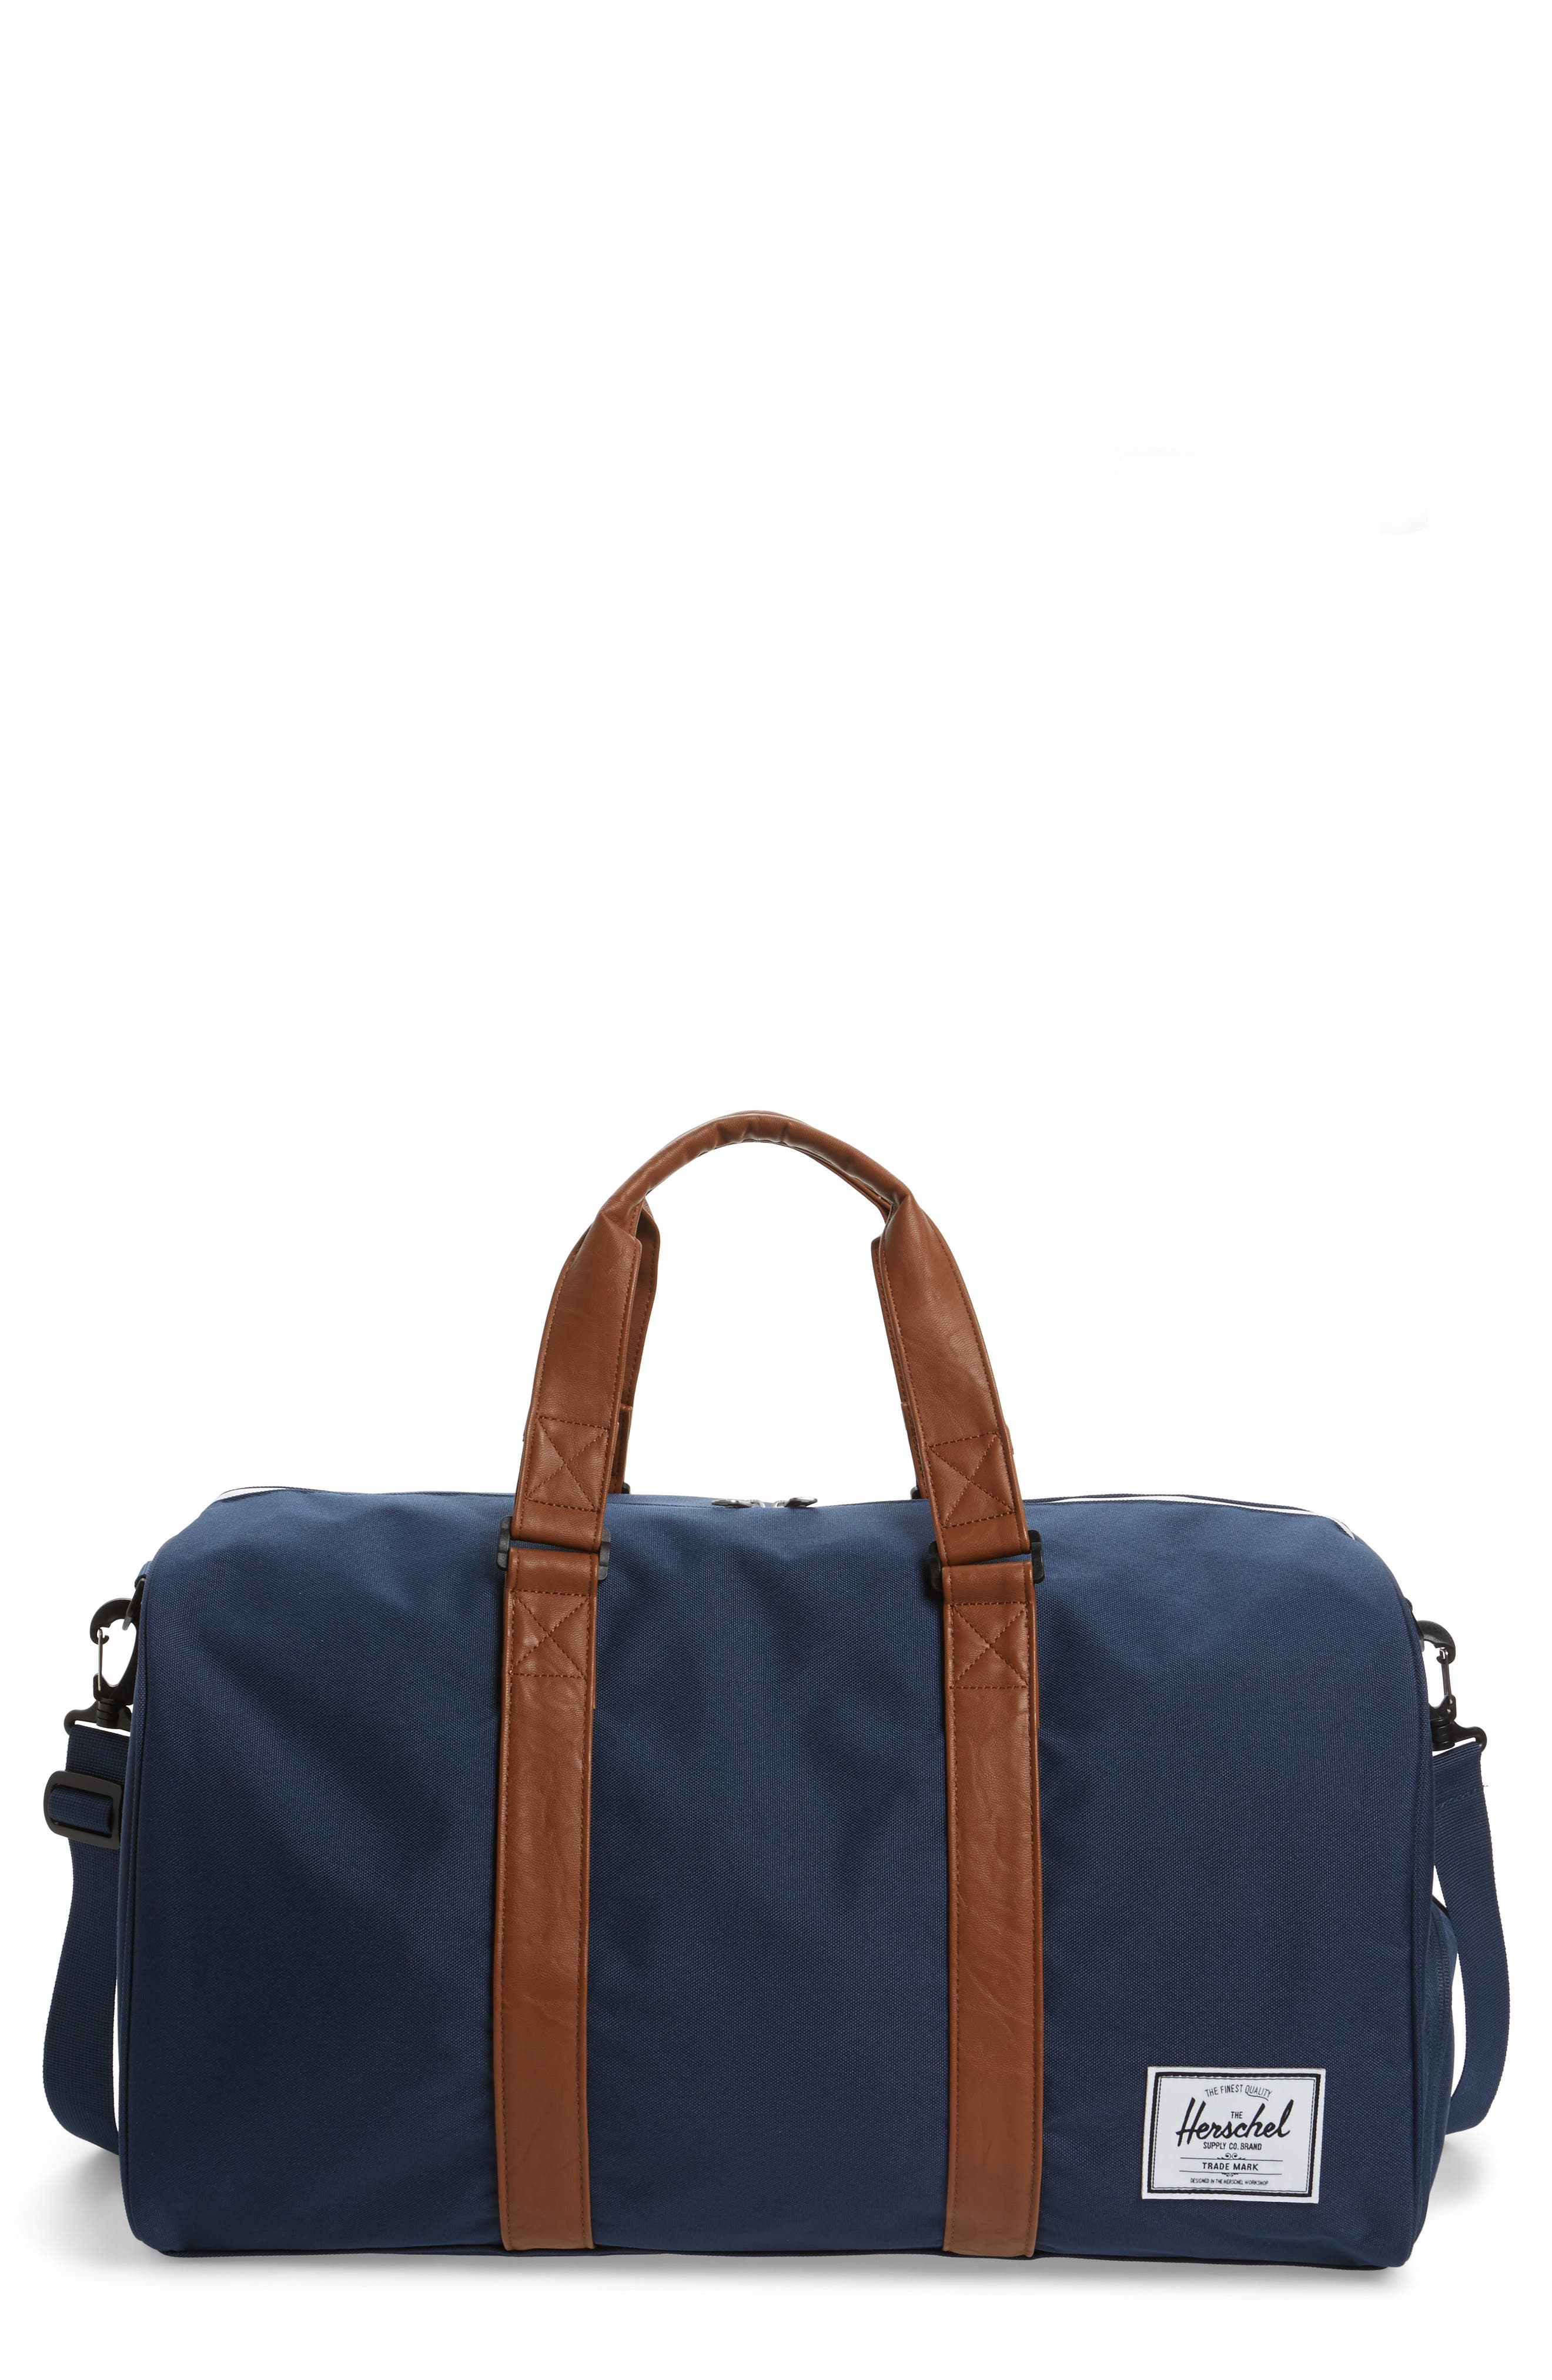 Double carrying handles define a classic duffle designed with an exterior zip shoe compartment to protect interior contents from dirt and grime. Style Name: Herschel Supply Co. Duffle Bag. Style Number: 547198. Available in stores.